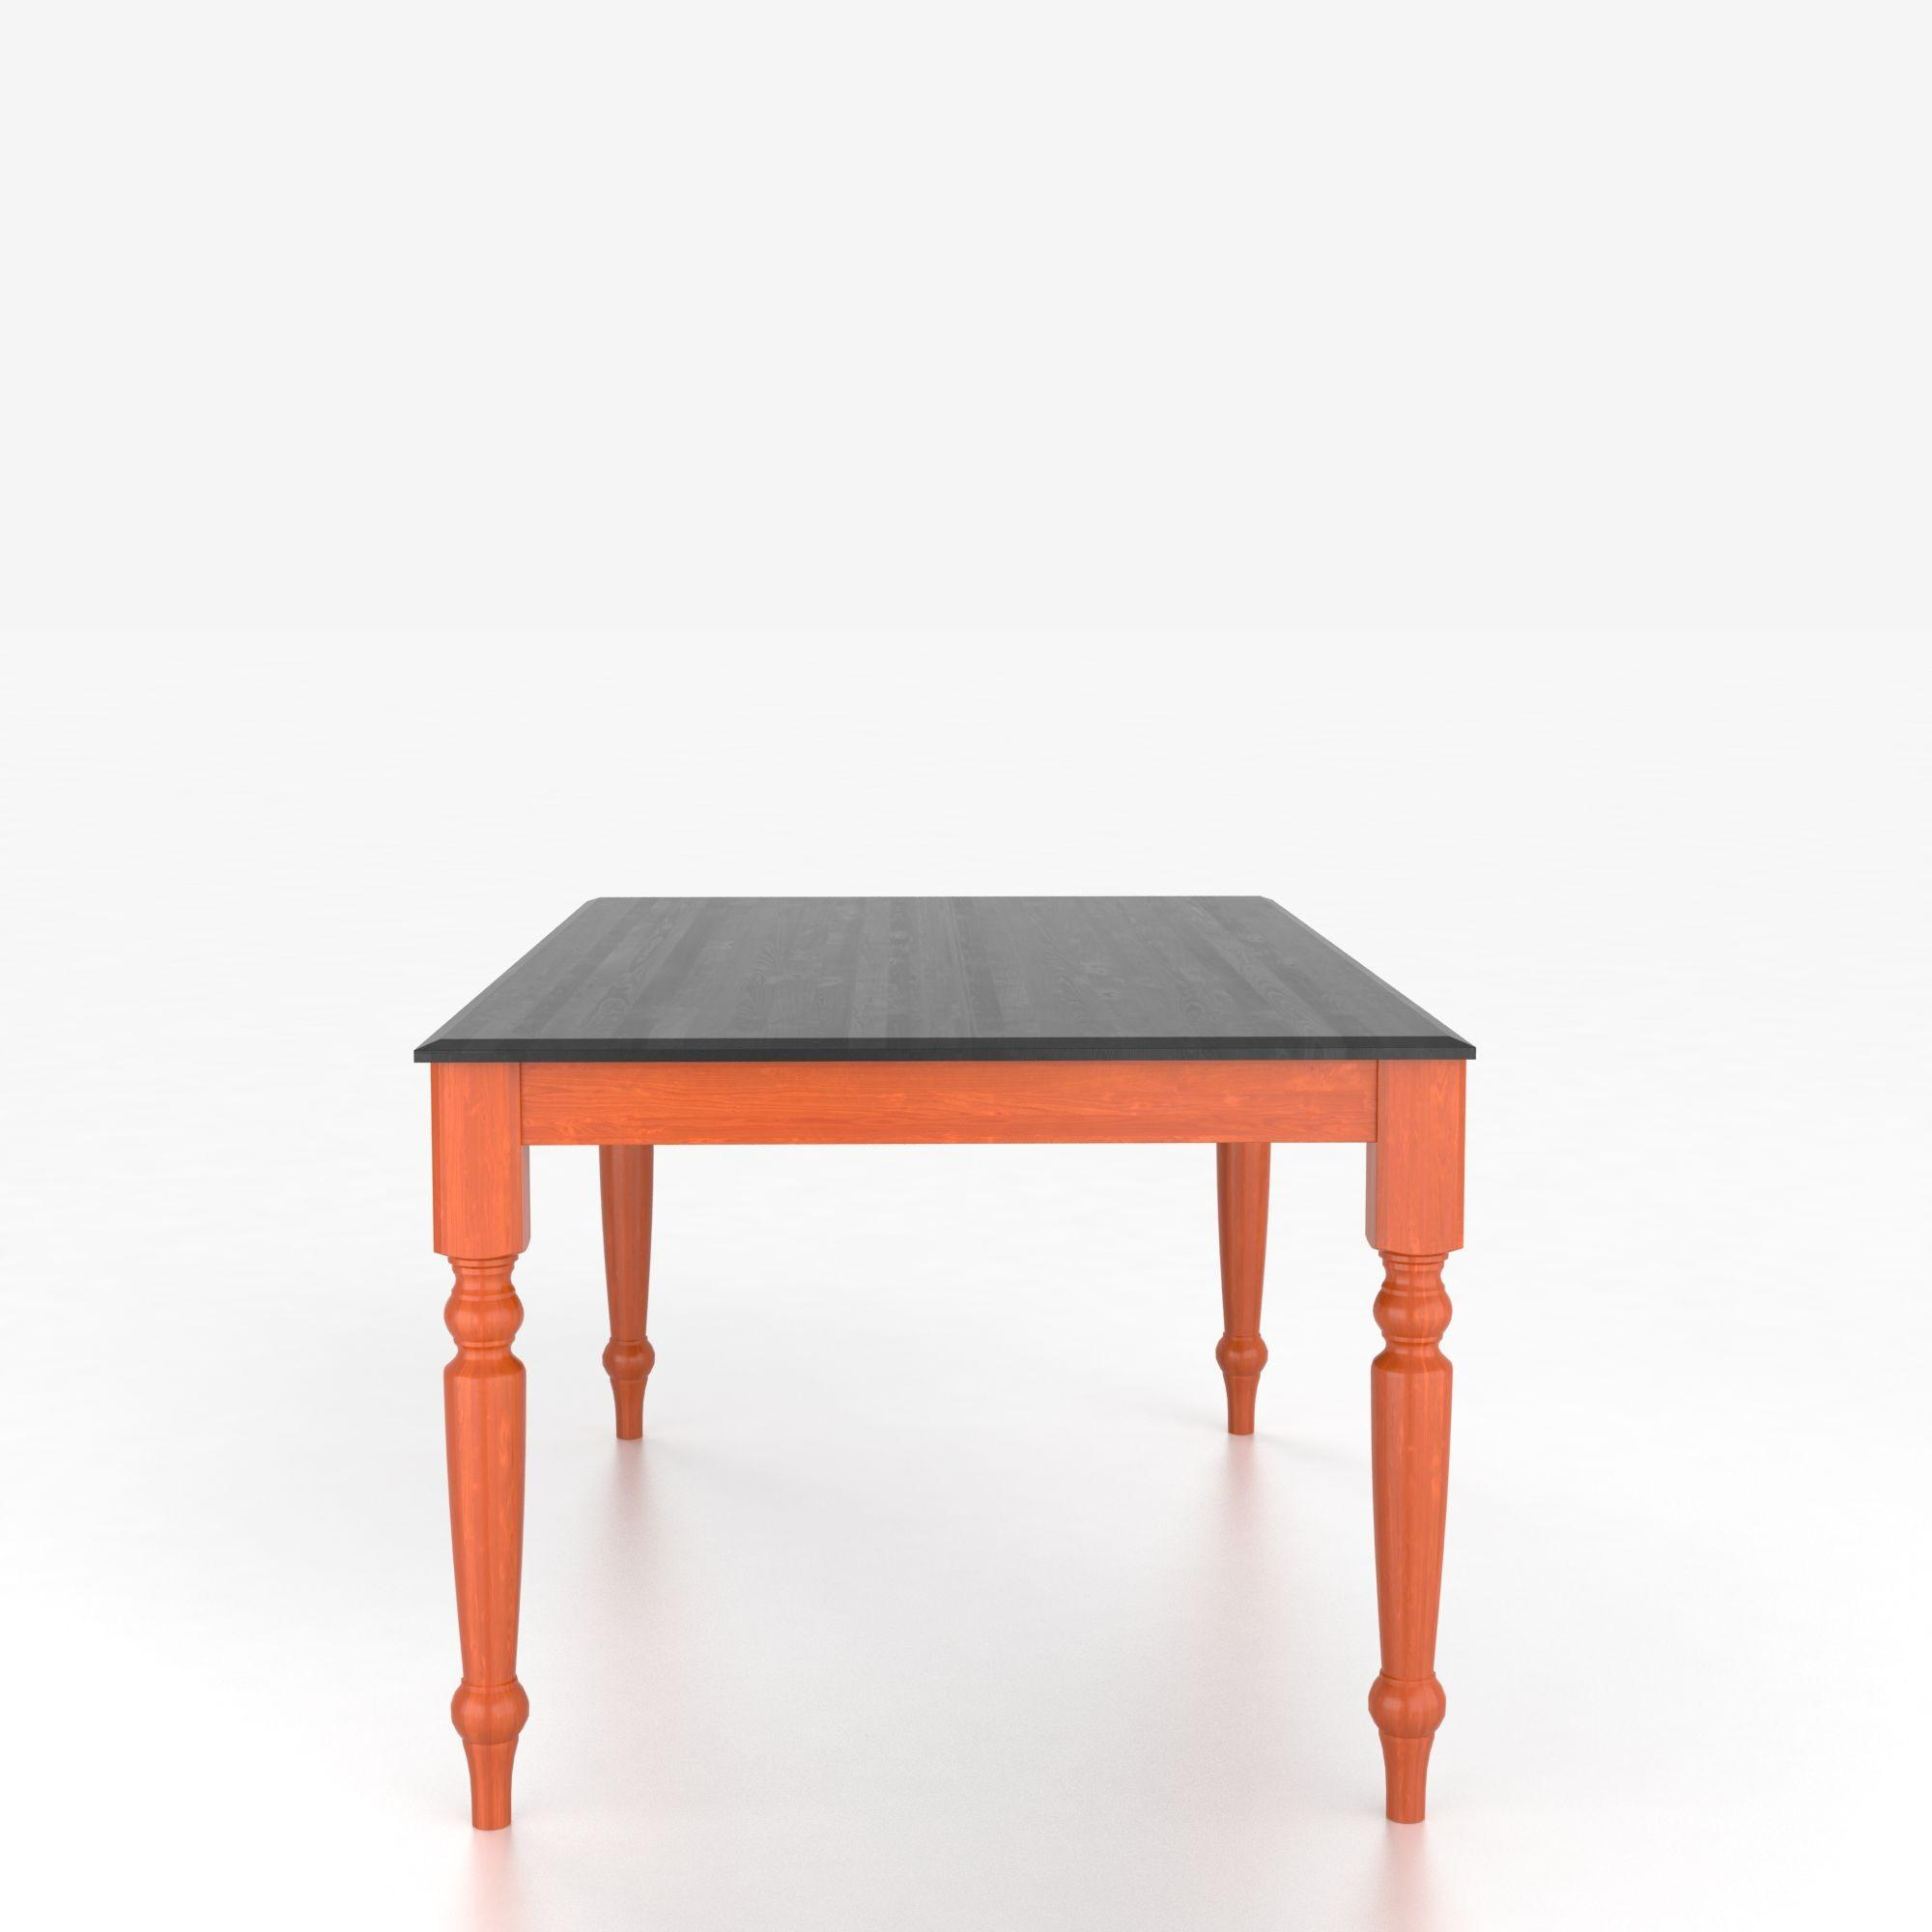 Custom Dining Tables Customizable Rectangular Table with Legs by Canadel at Steger's Furniture